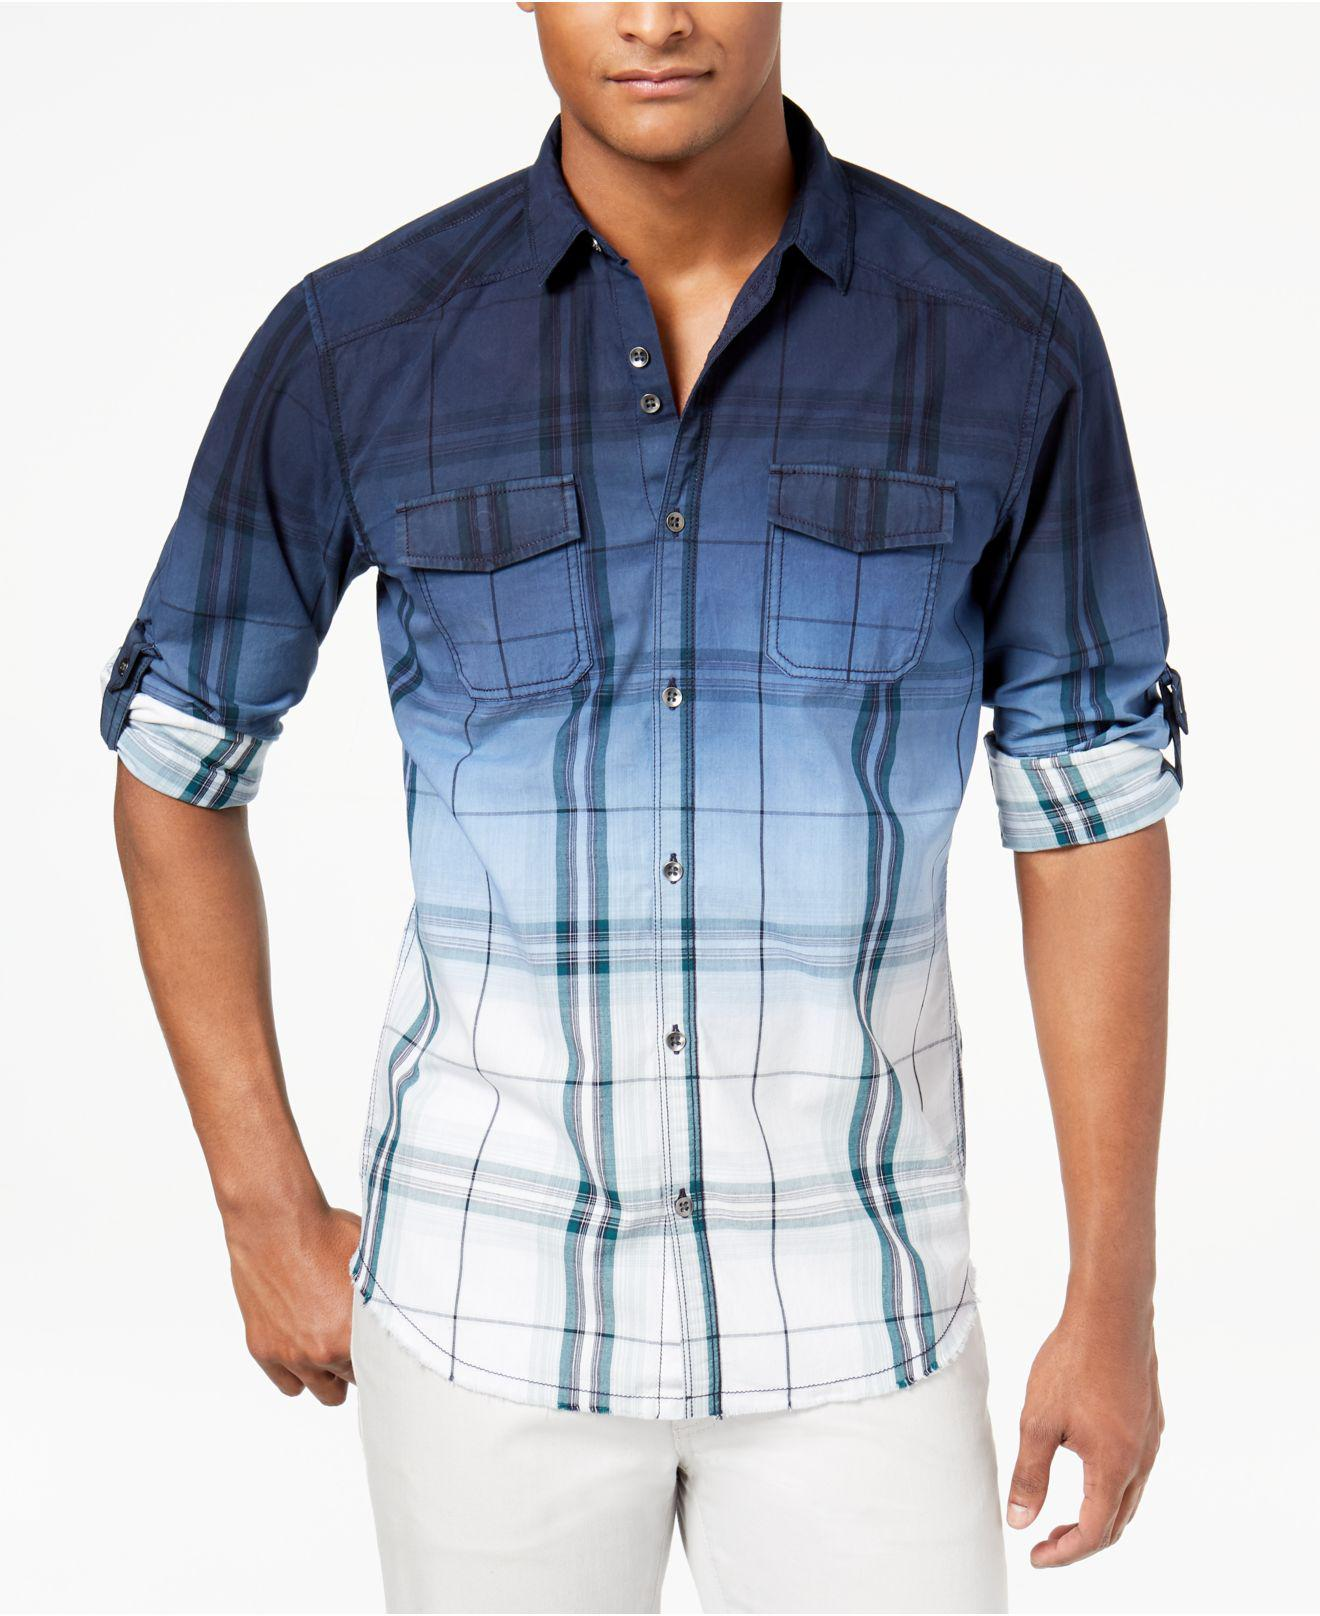 0864a04bc06 Mens Shirts Casual Macys « Alzheimer's Network of Oregon